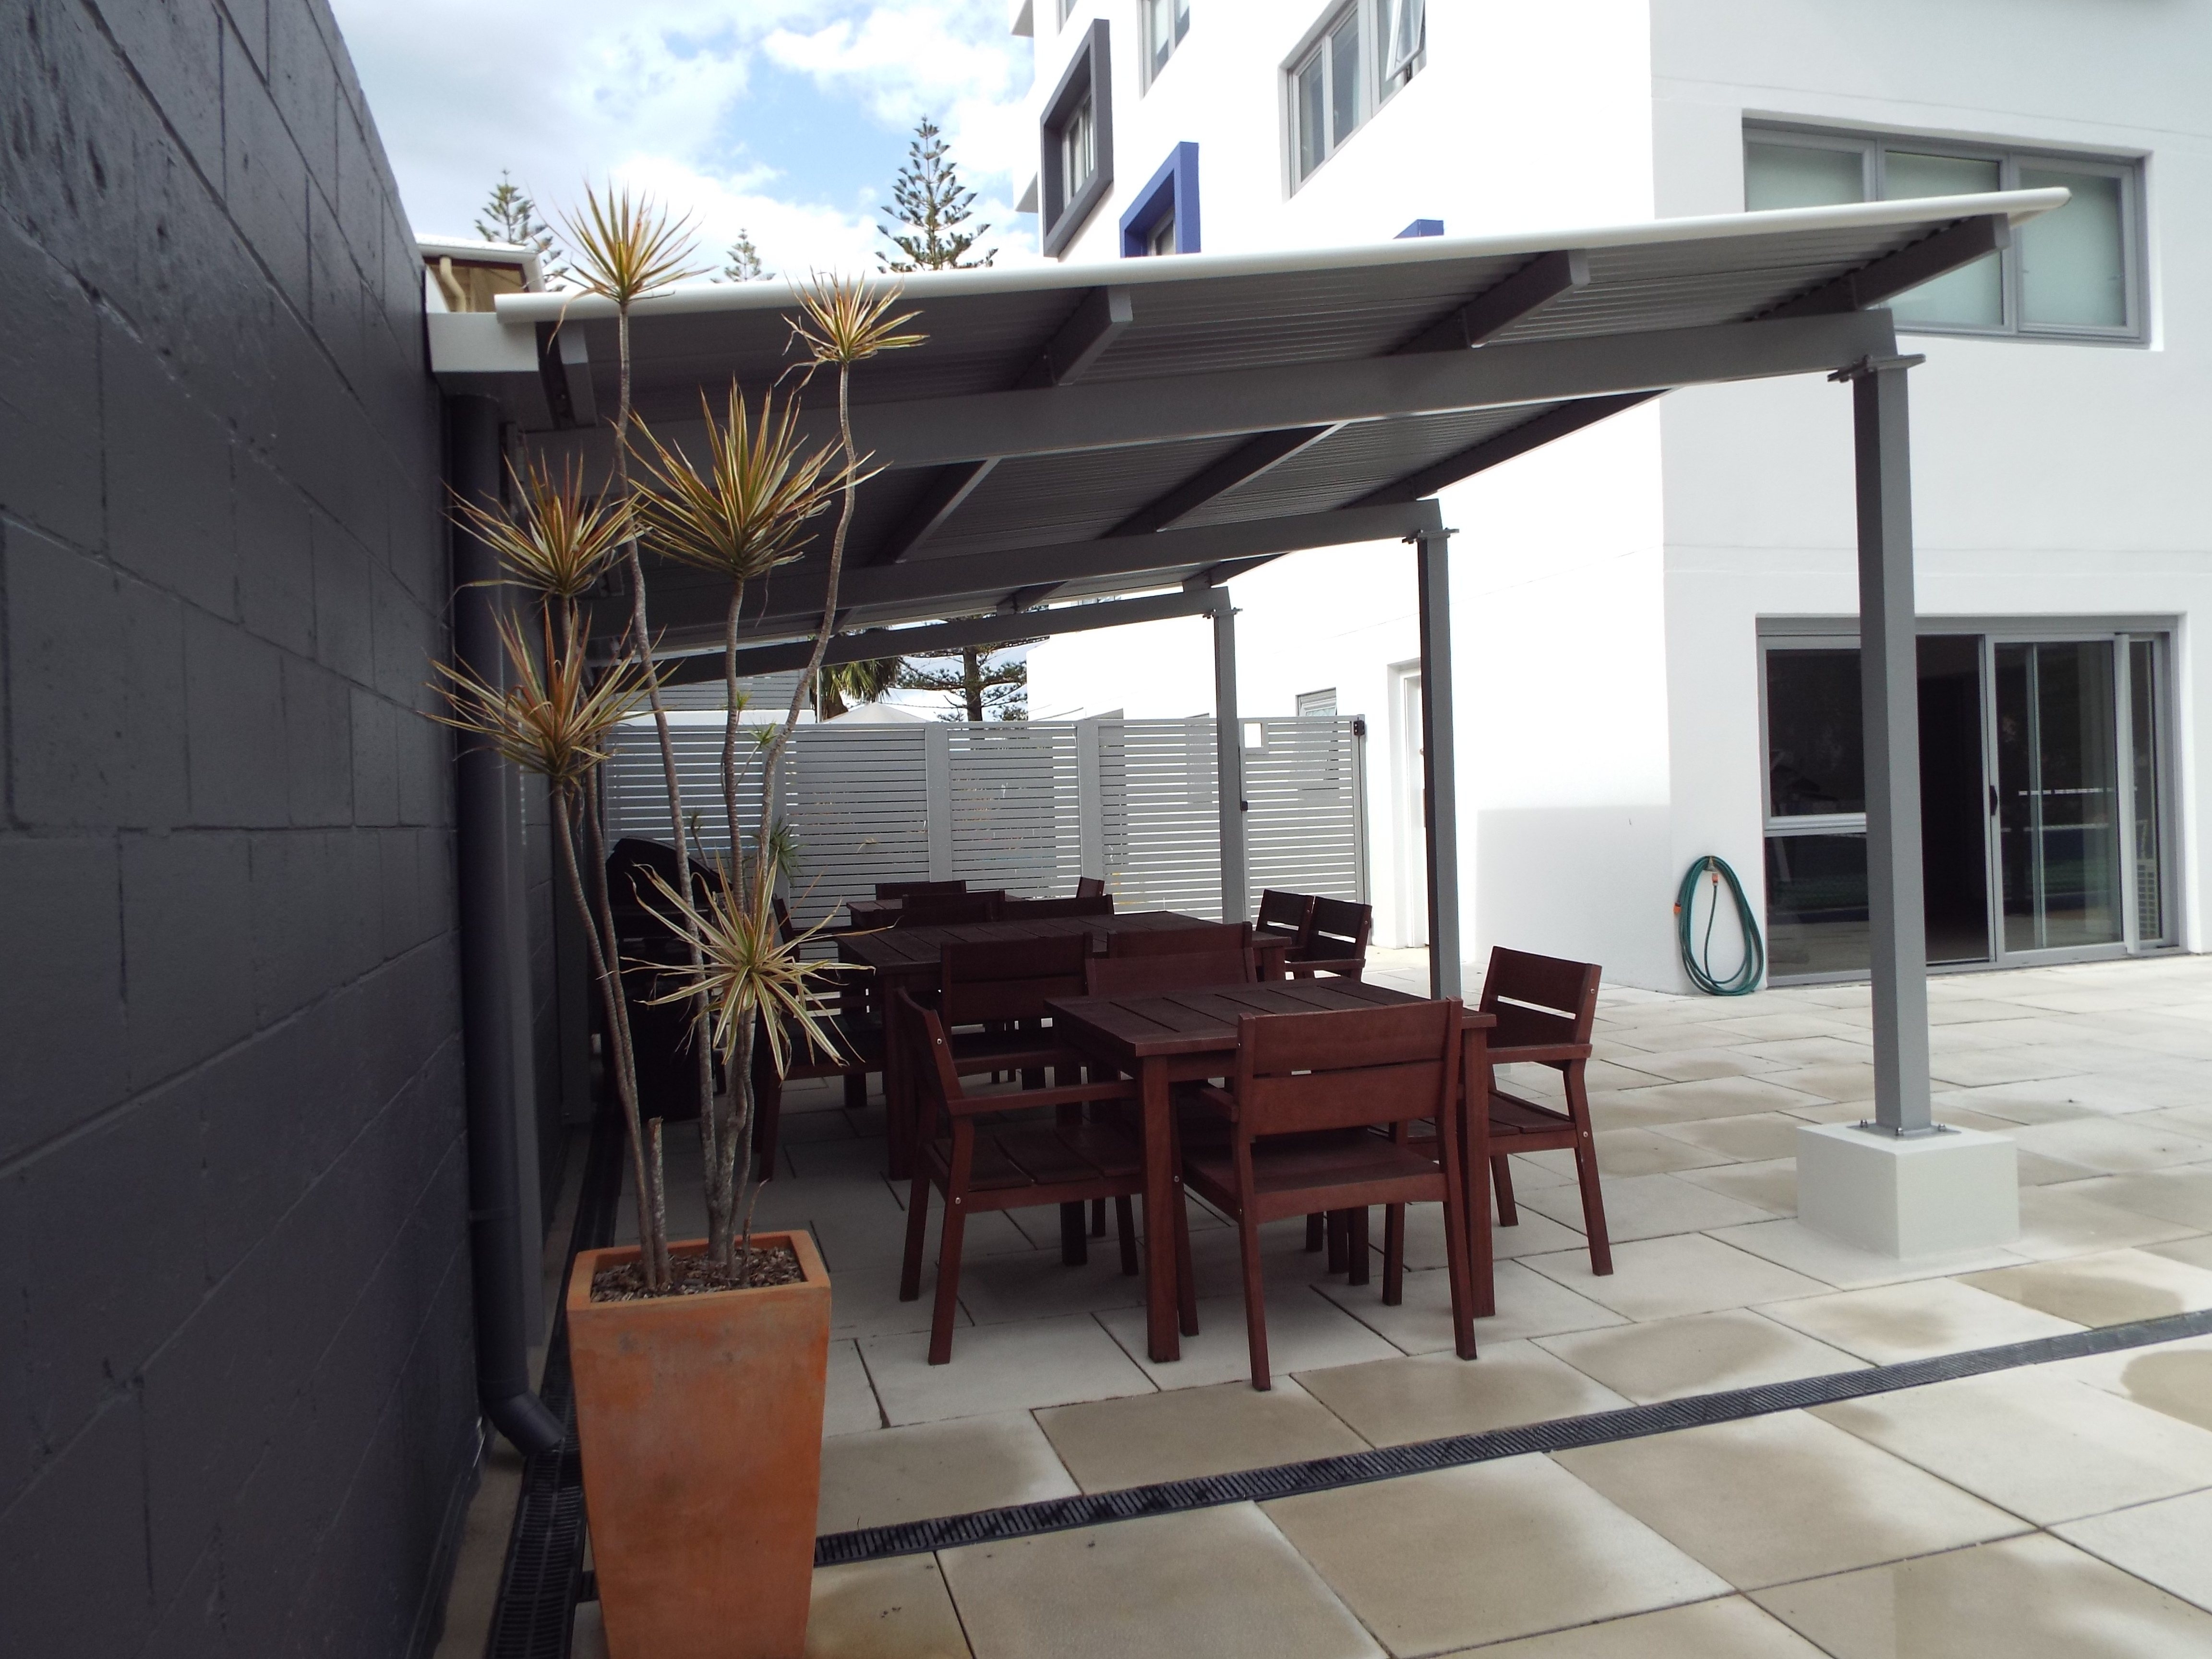 Covered BBQ and out door dining